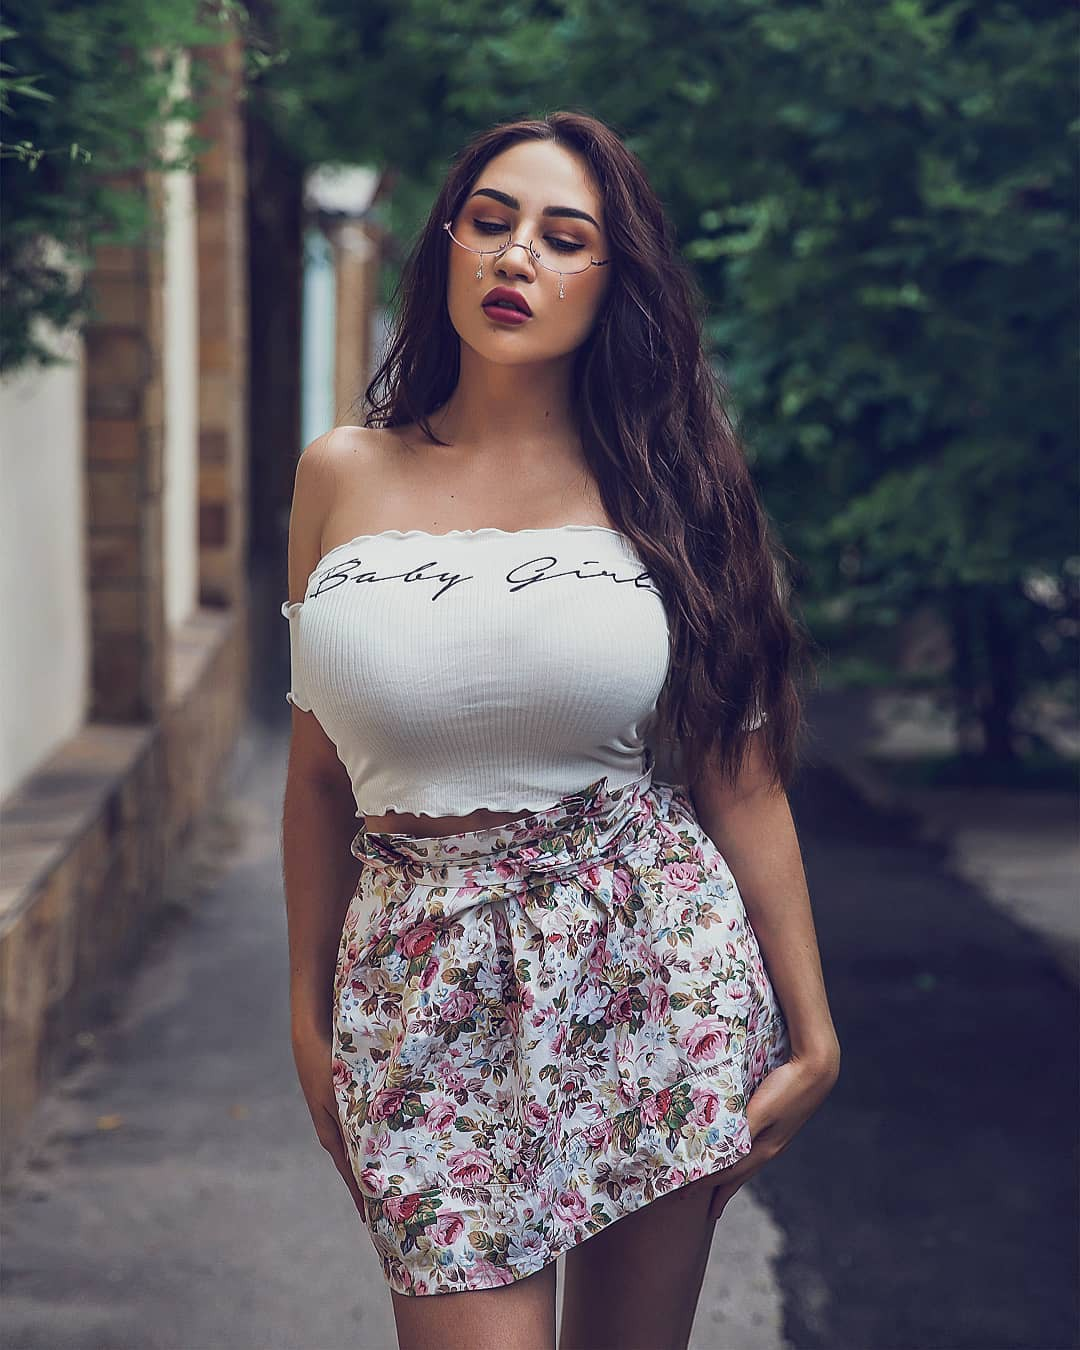 white dresses ideas with dress, instagram photoshoot, Outerwear